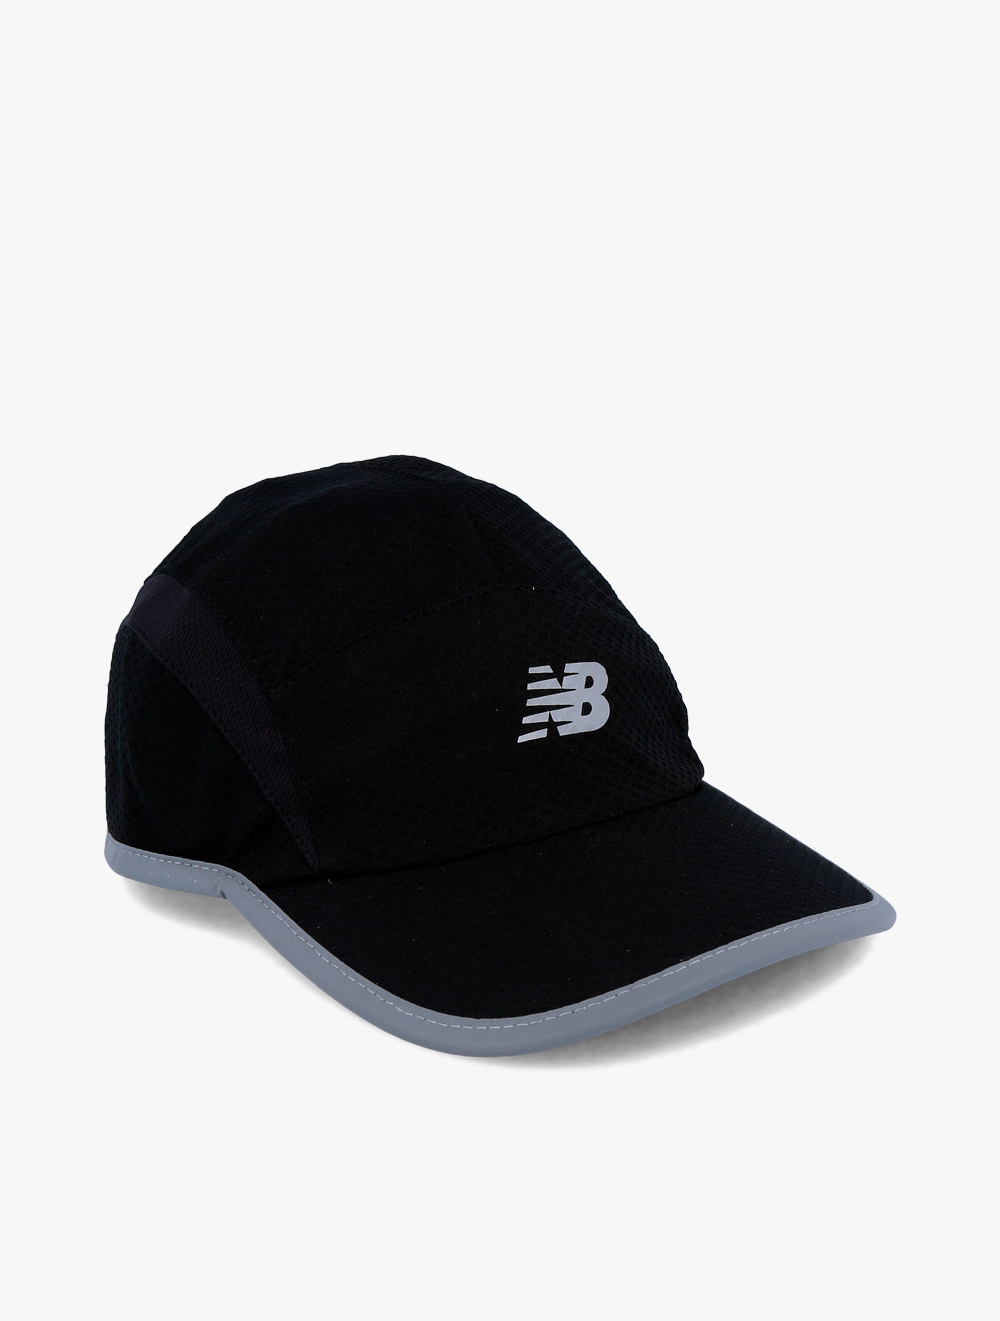 6fafc508 inexpensive golden knights adjustable slouch dobby hat 04d2b 8cf53; promo  code for shop the latest hats caps from planet sports on mapemall 54ee7  c41b7